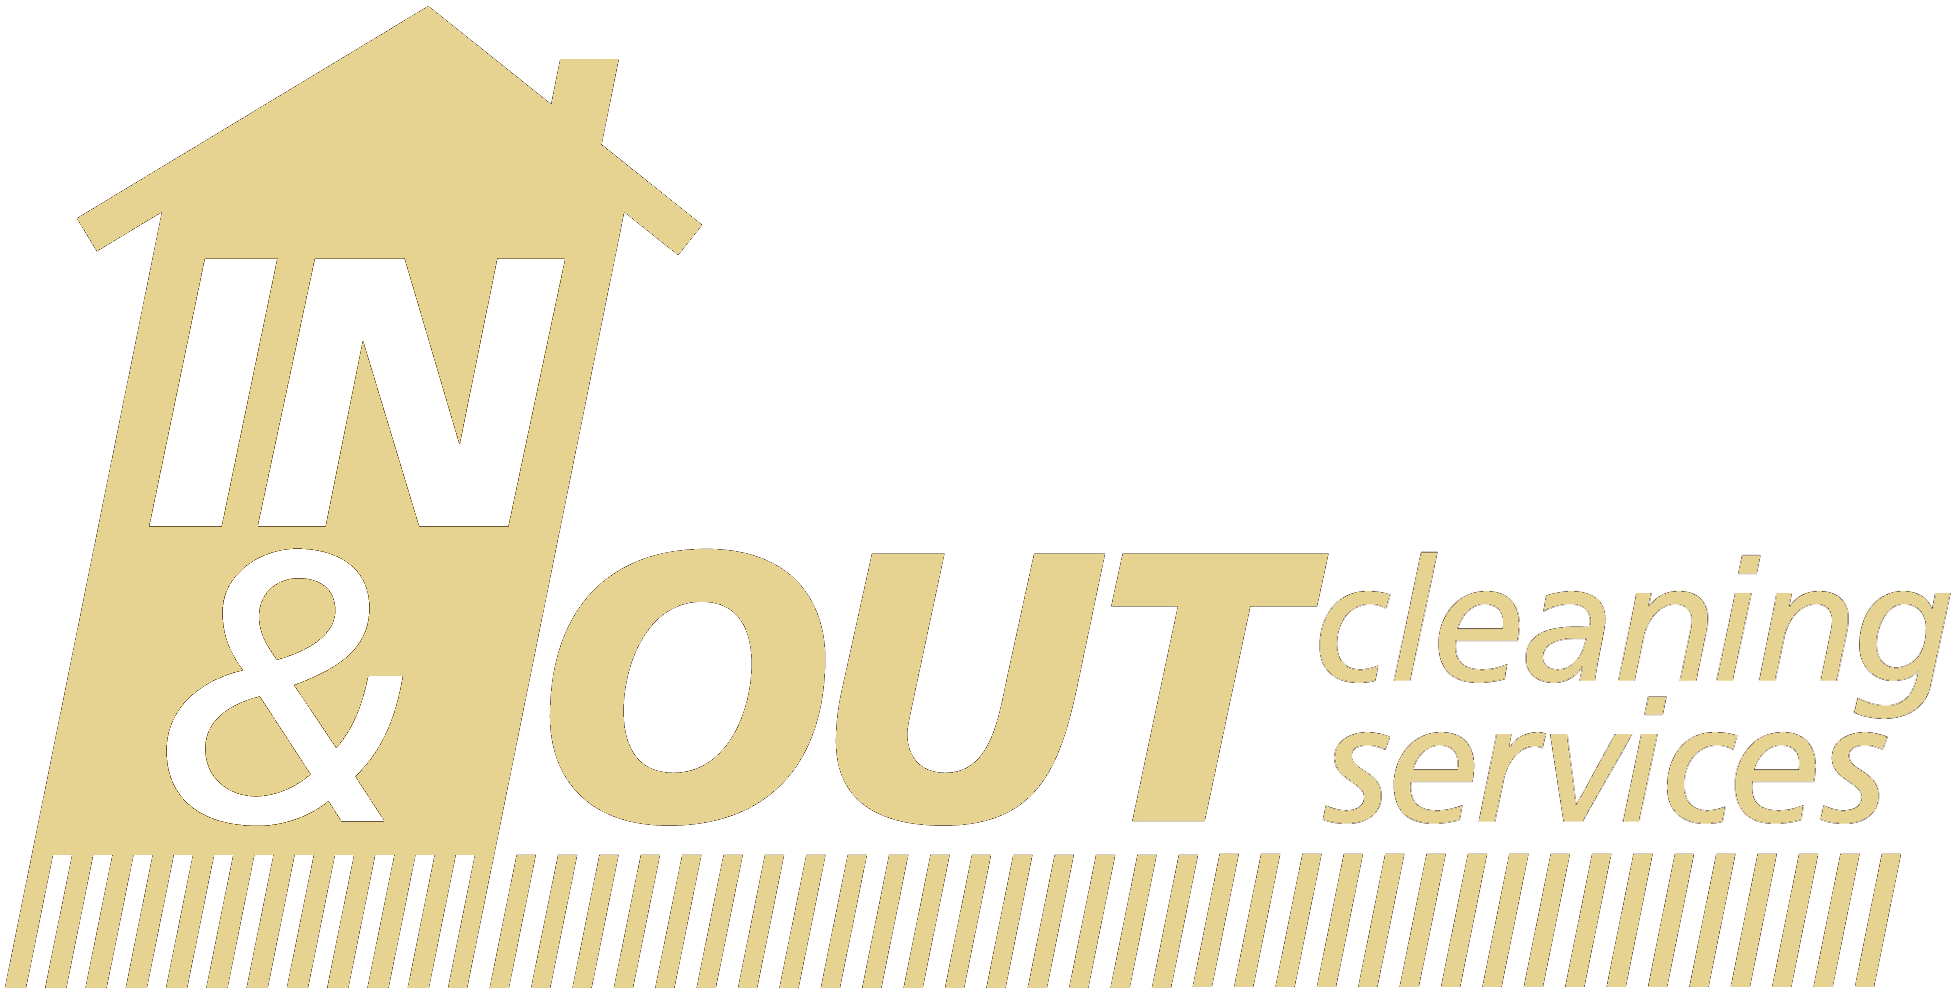 In & Out Cleaning Services